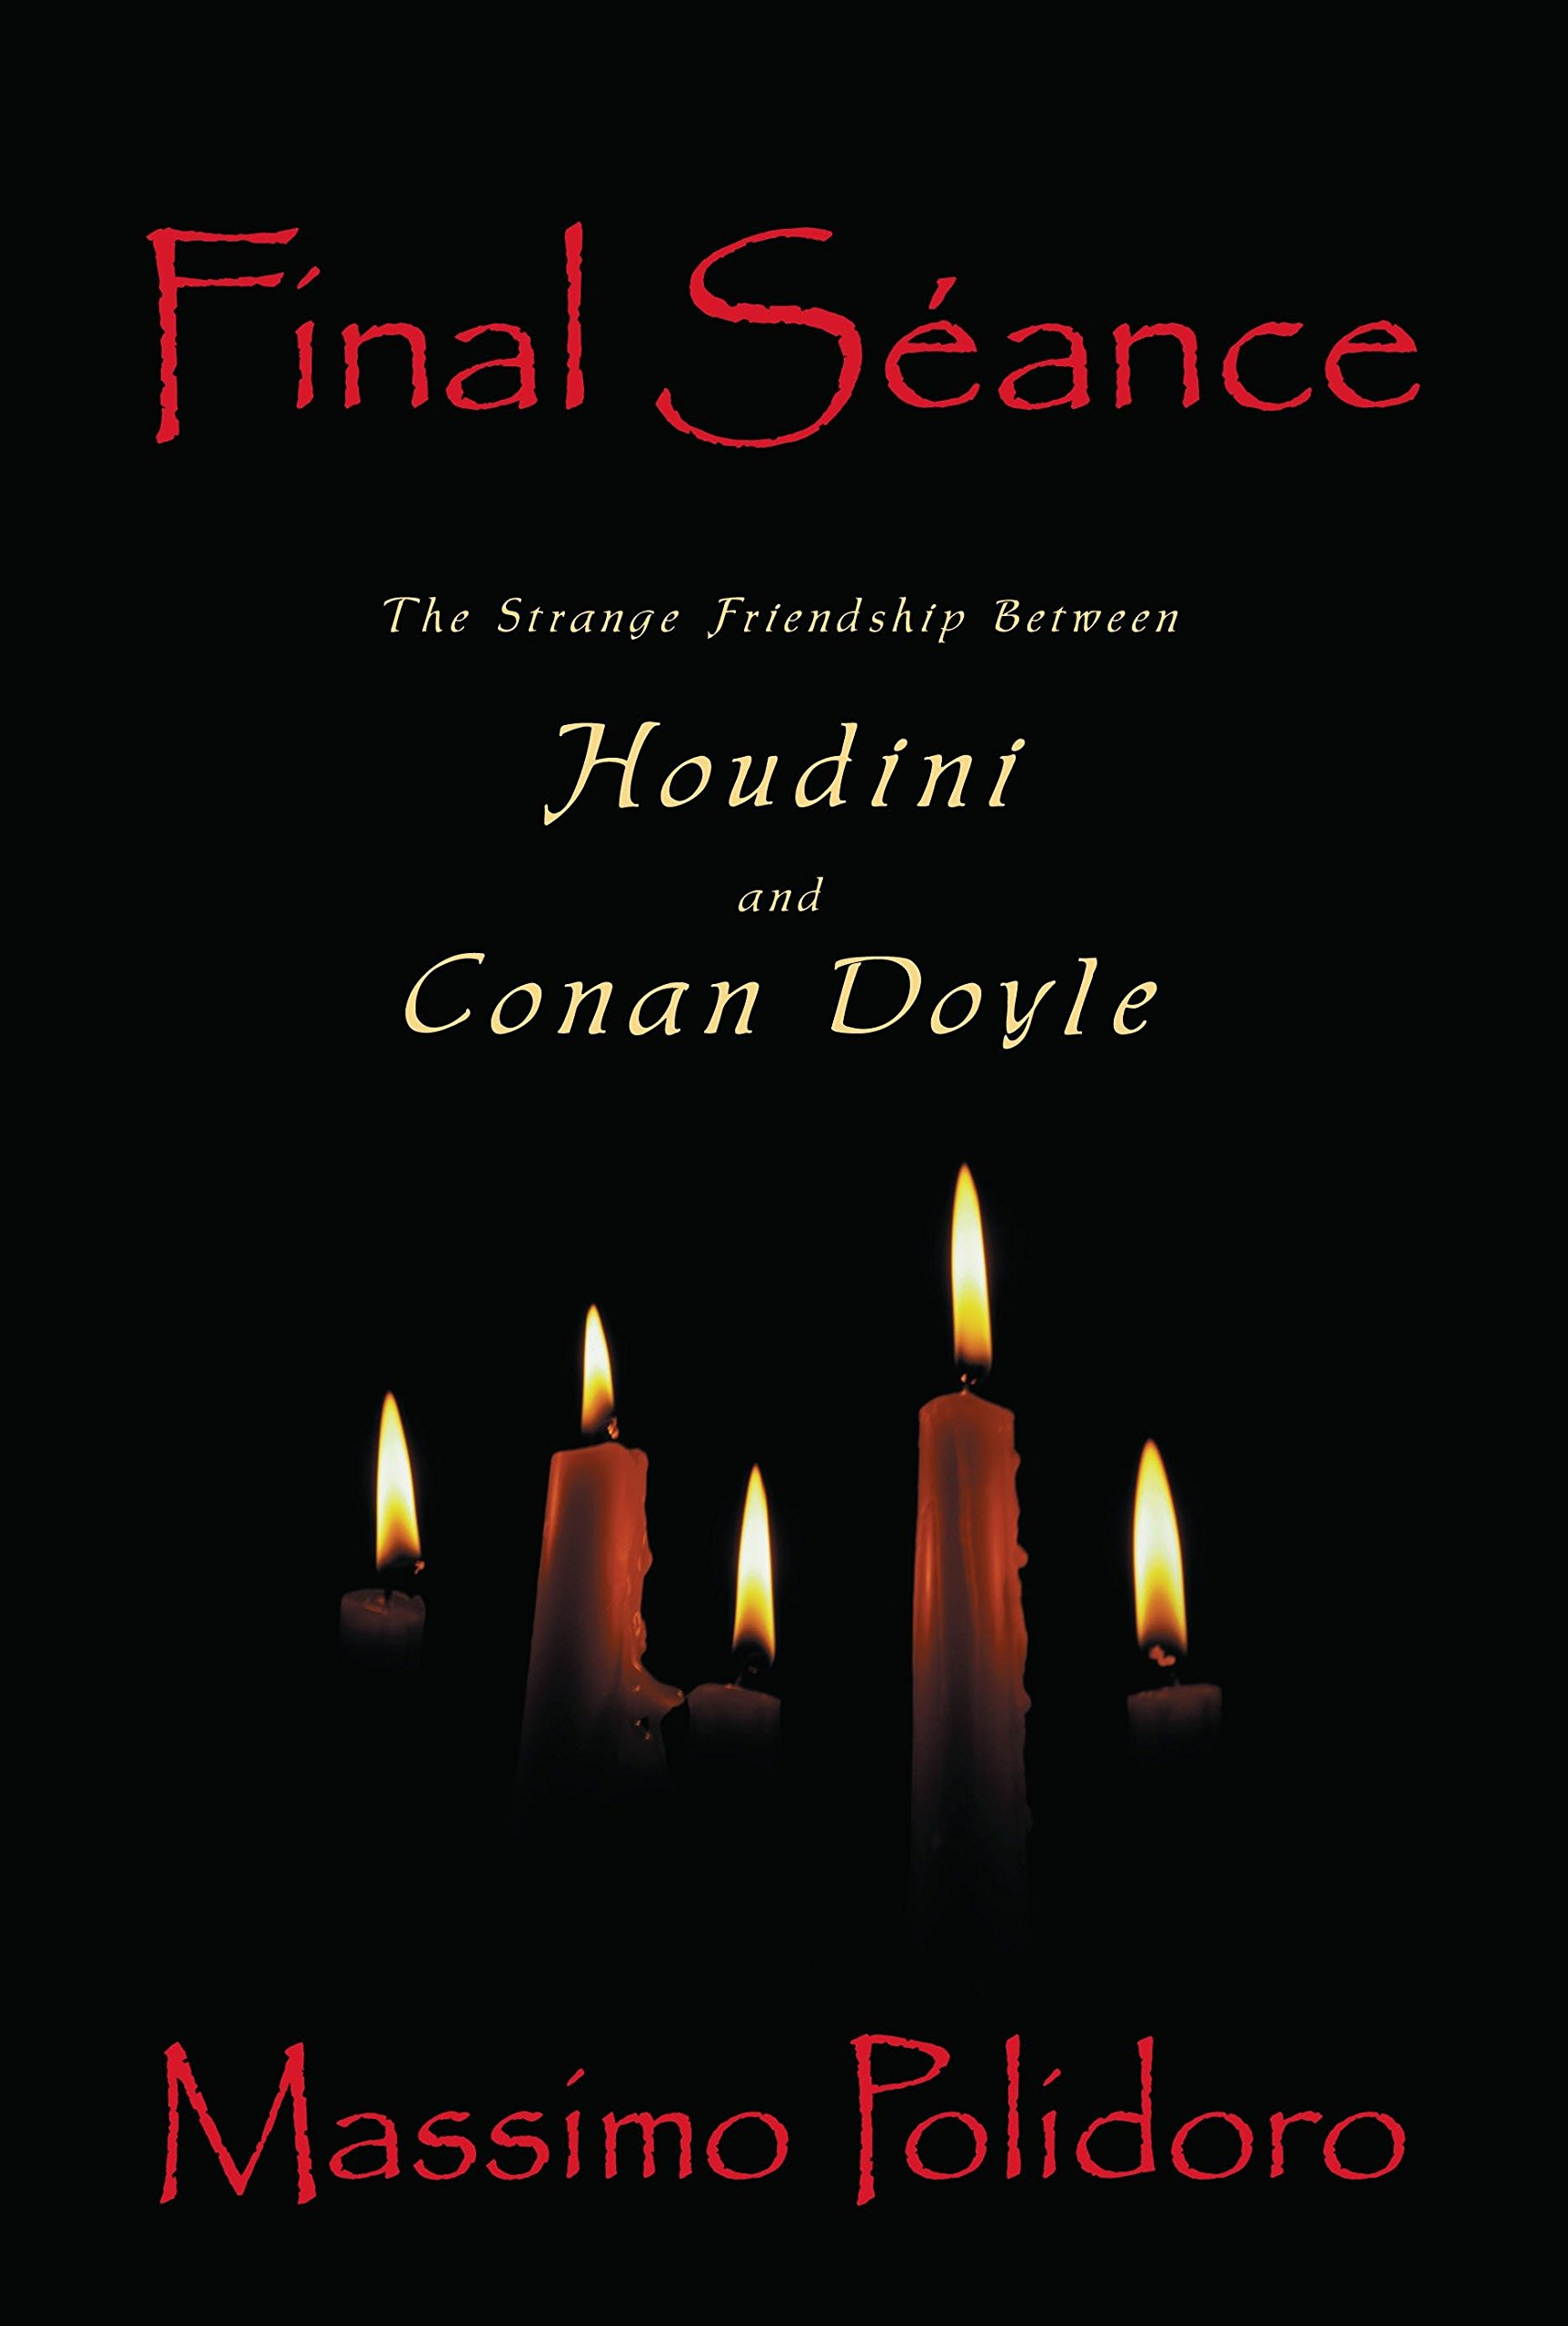 houdini polidoro  Final Séance: The Strange Friendship Between Houdini and Conan Doyle ...